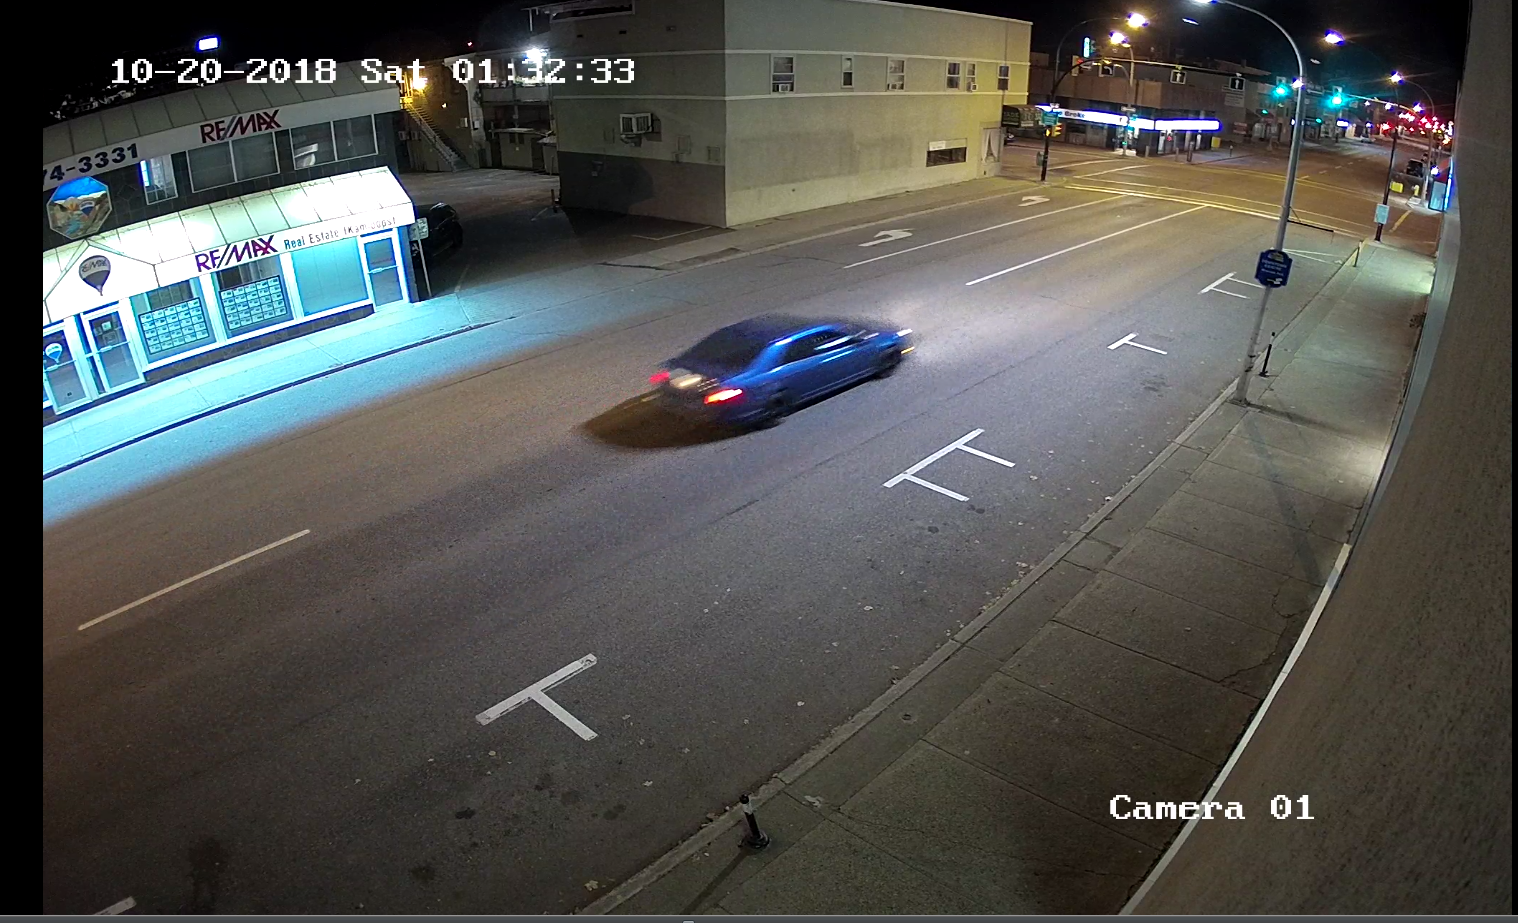 New Vehicle Sought in Hit and Run Case